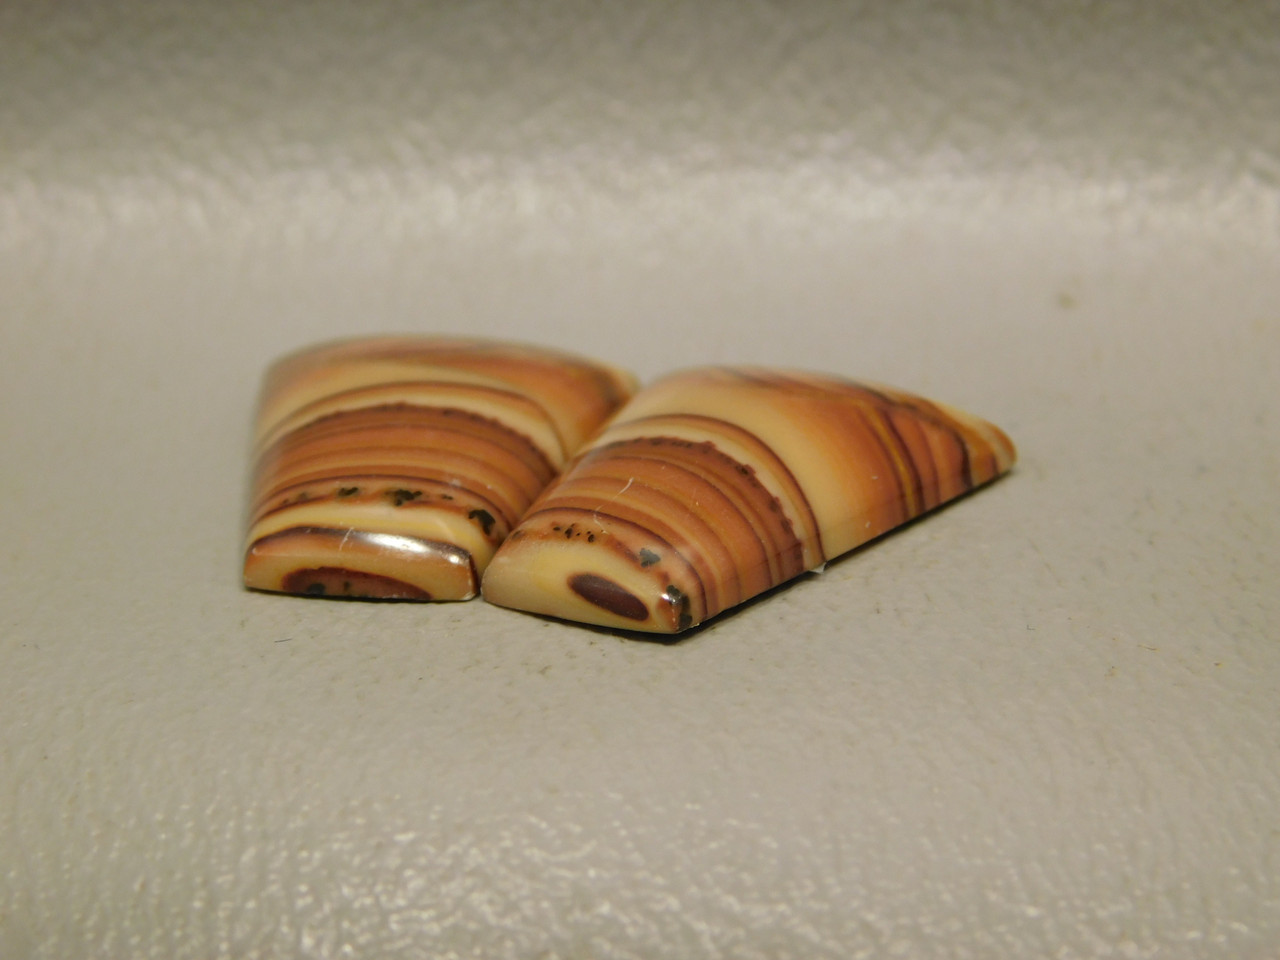 Wave Dolomite Semiprecious Stone Cabochons Matched Pairs #21